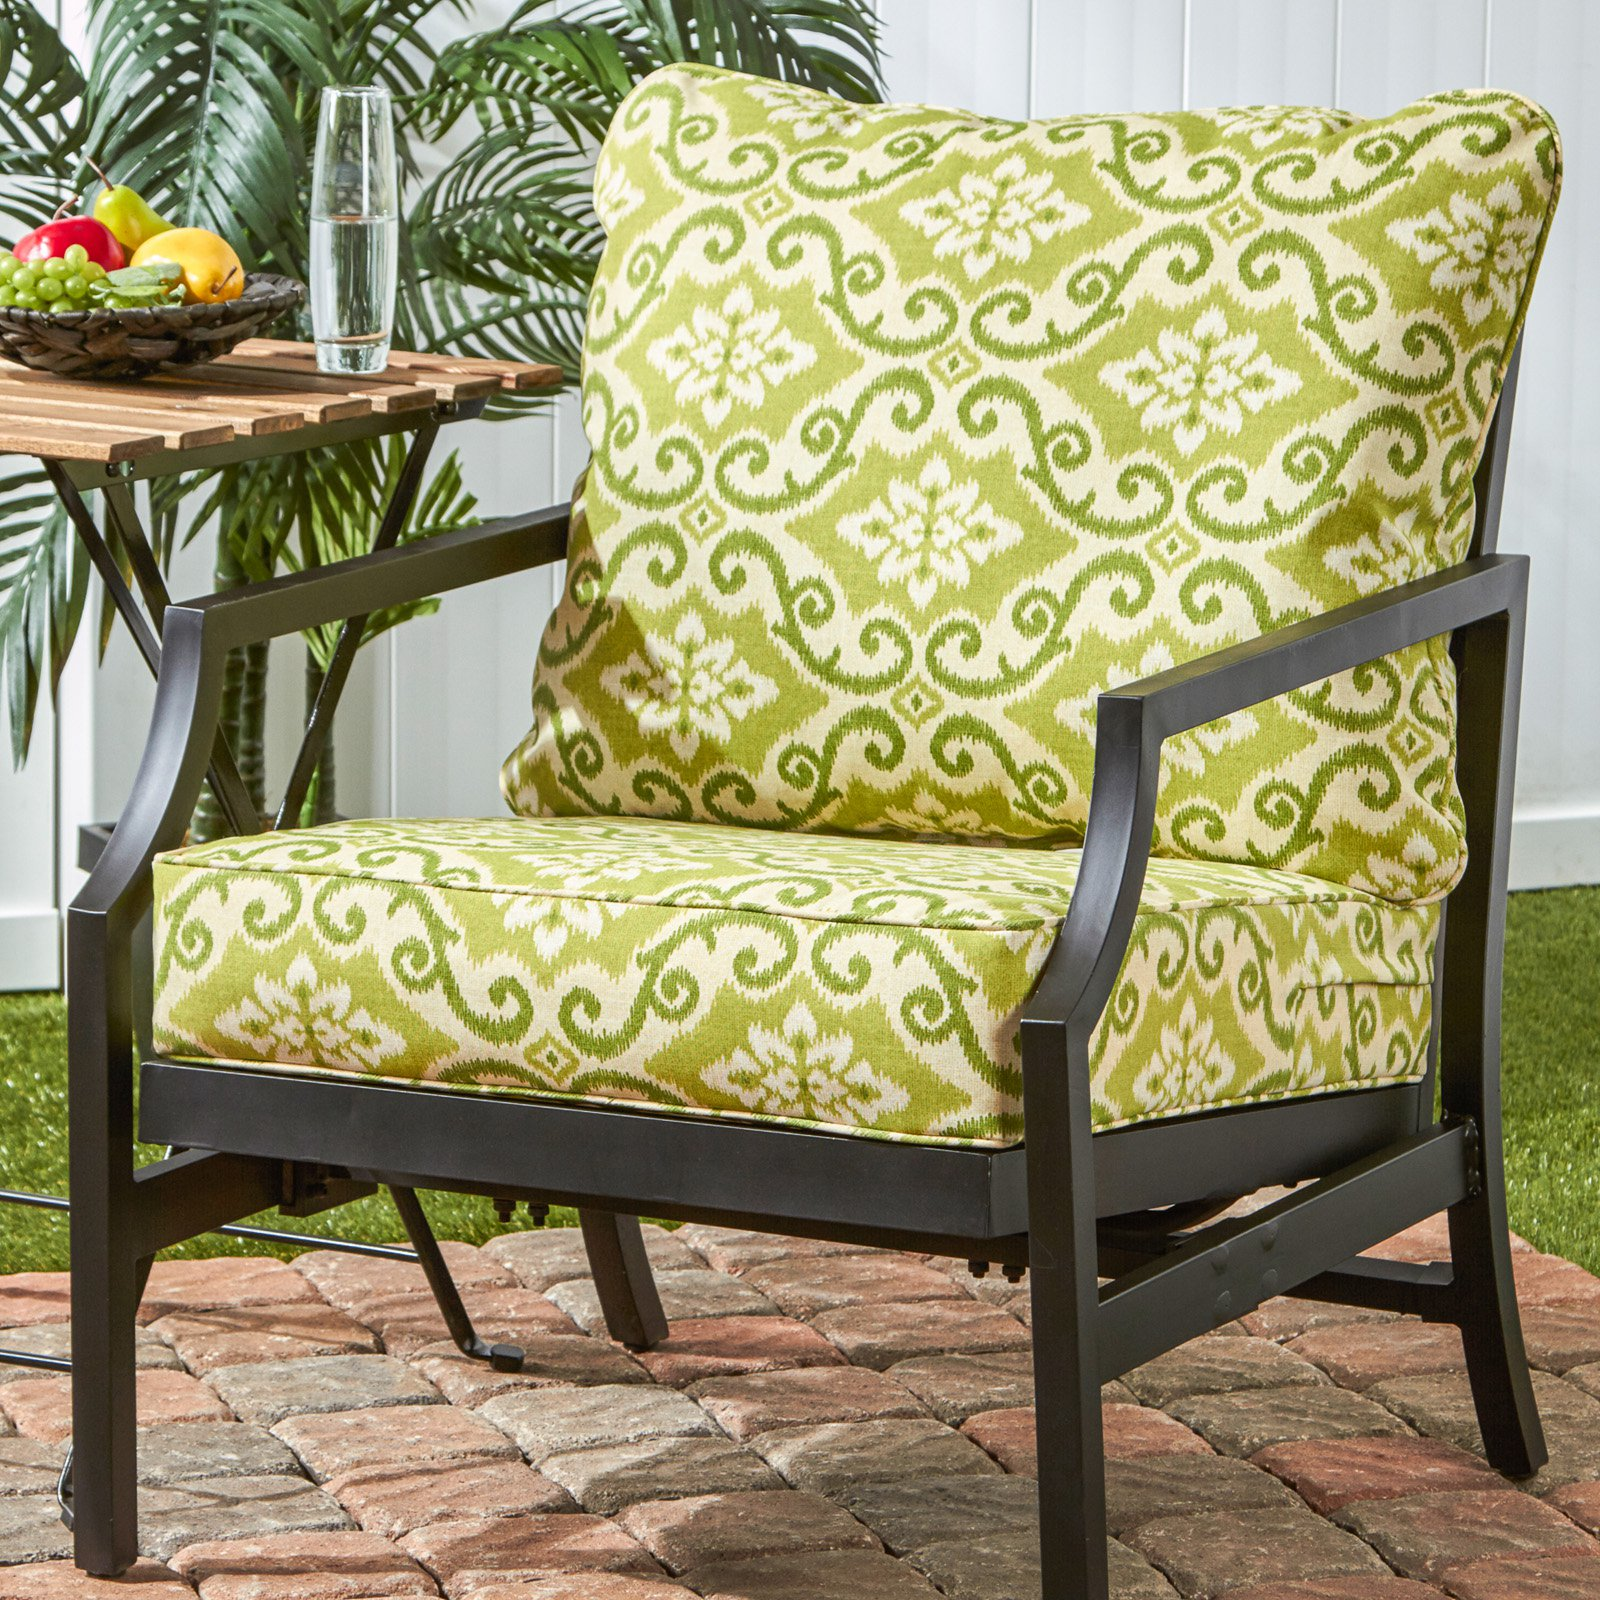 Greendale Home Fashions Deep Seat Cushion Set Shoreham